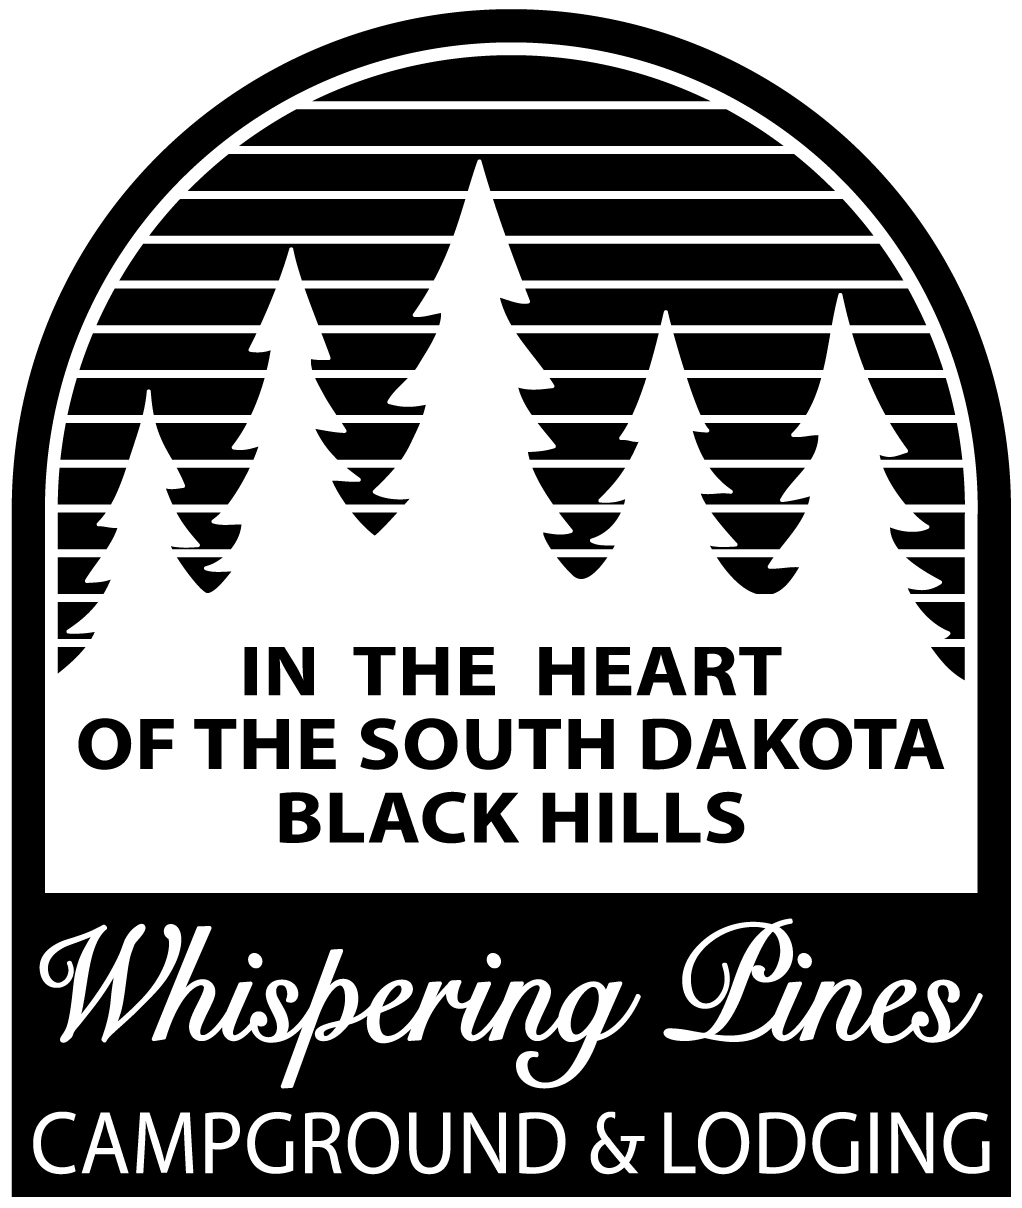 Black Hills Whispering Pines Campground